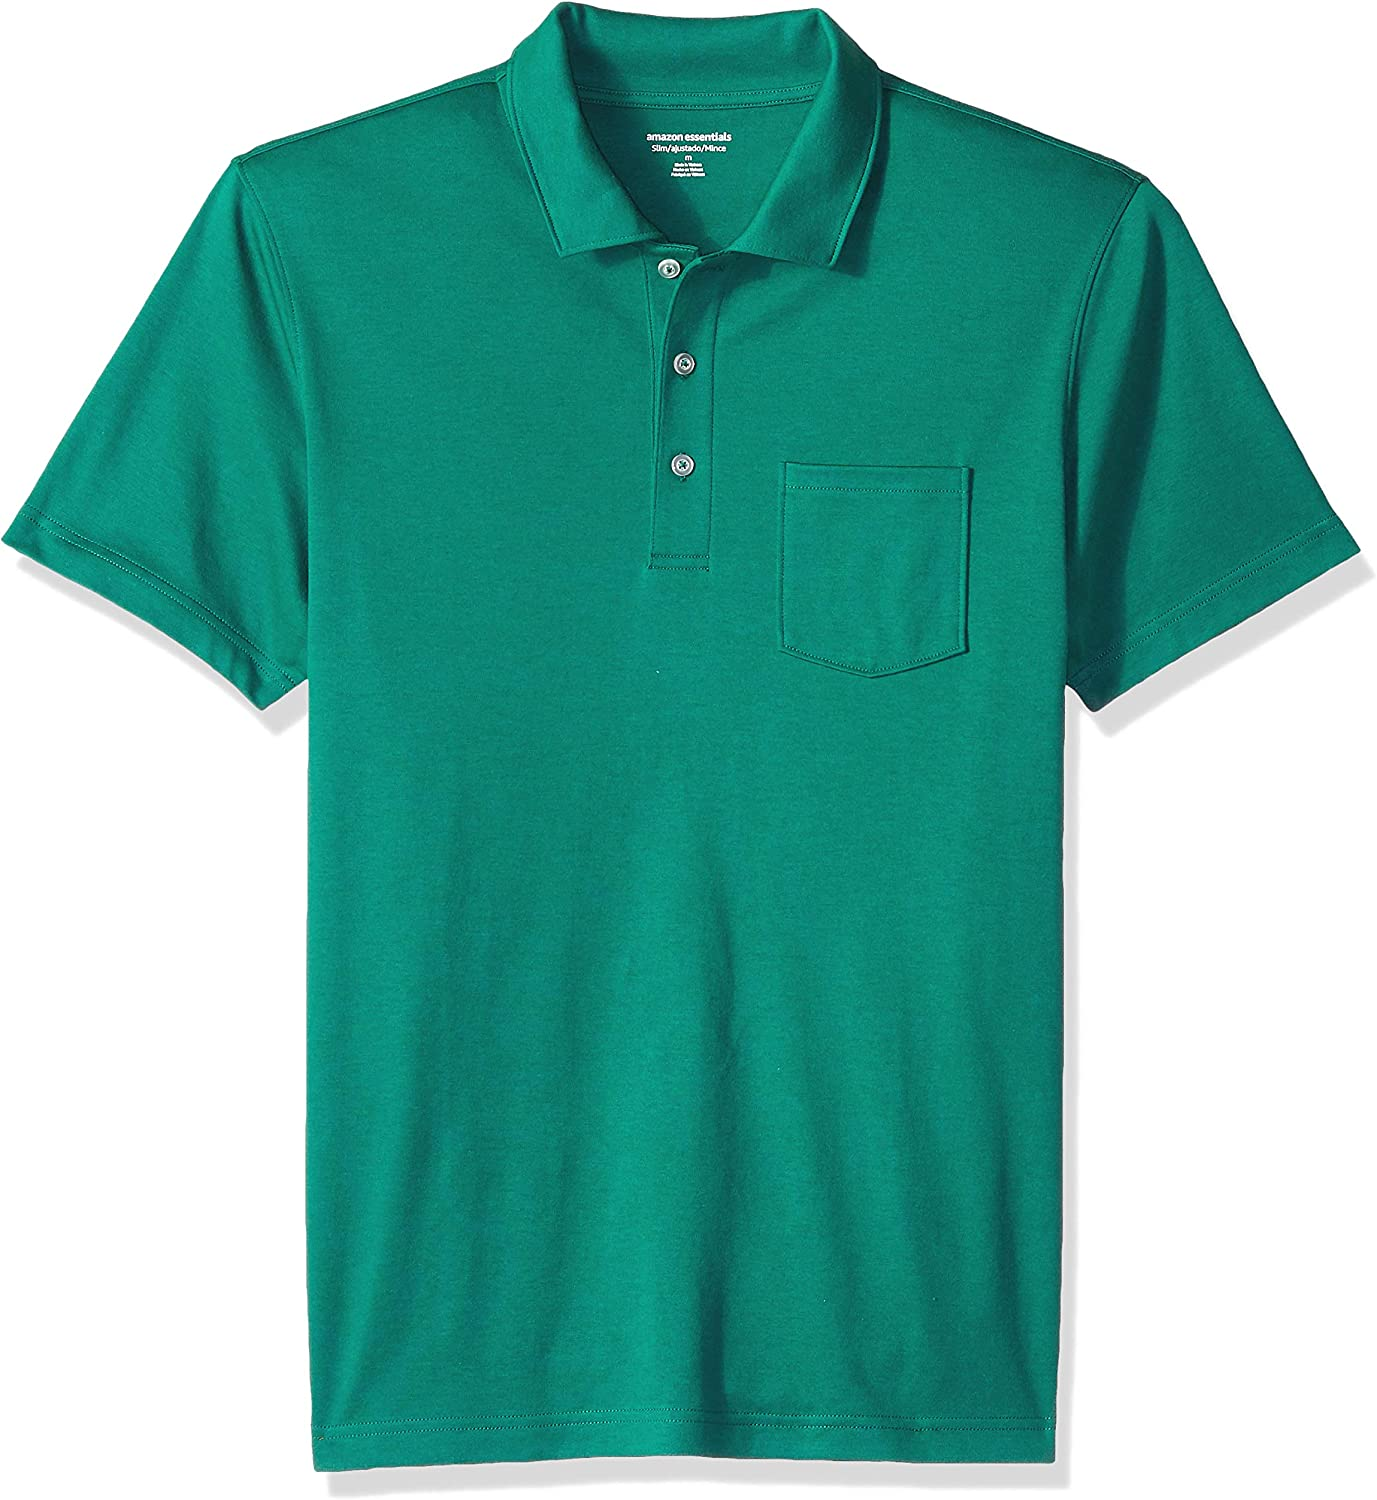 Essentials Men's Slim-Fit Pocket Jersey Polo: Clothing